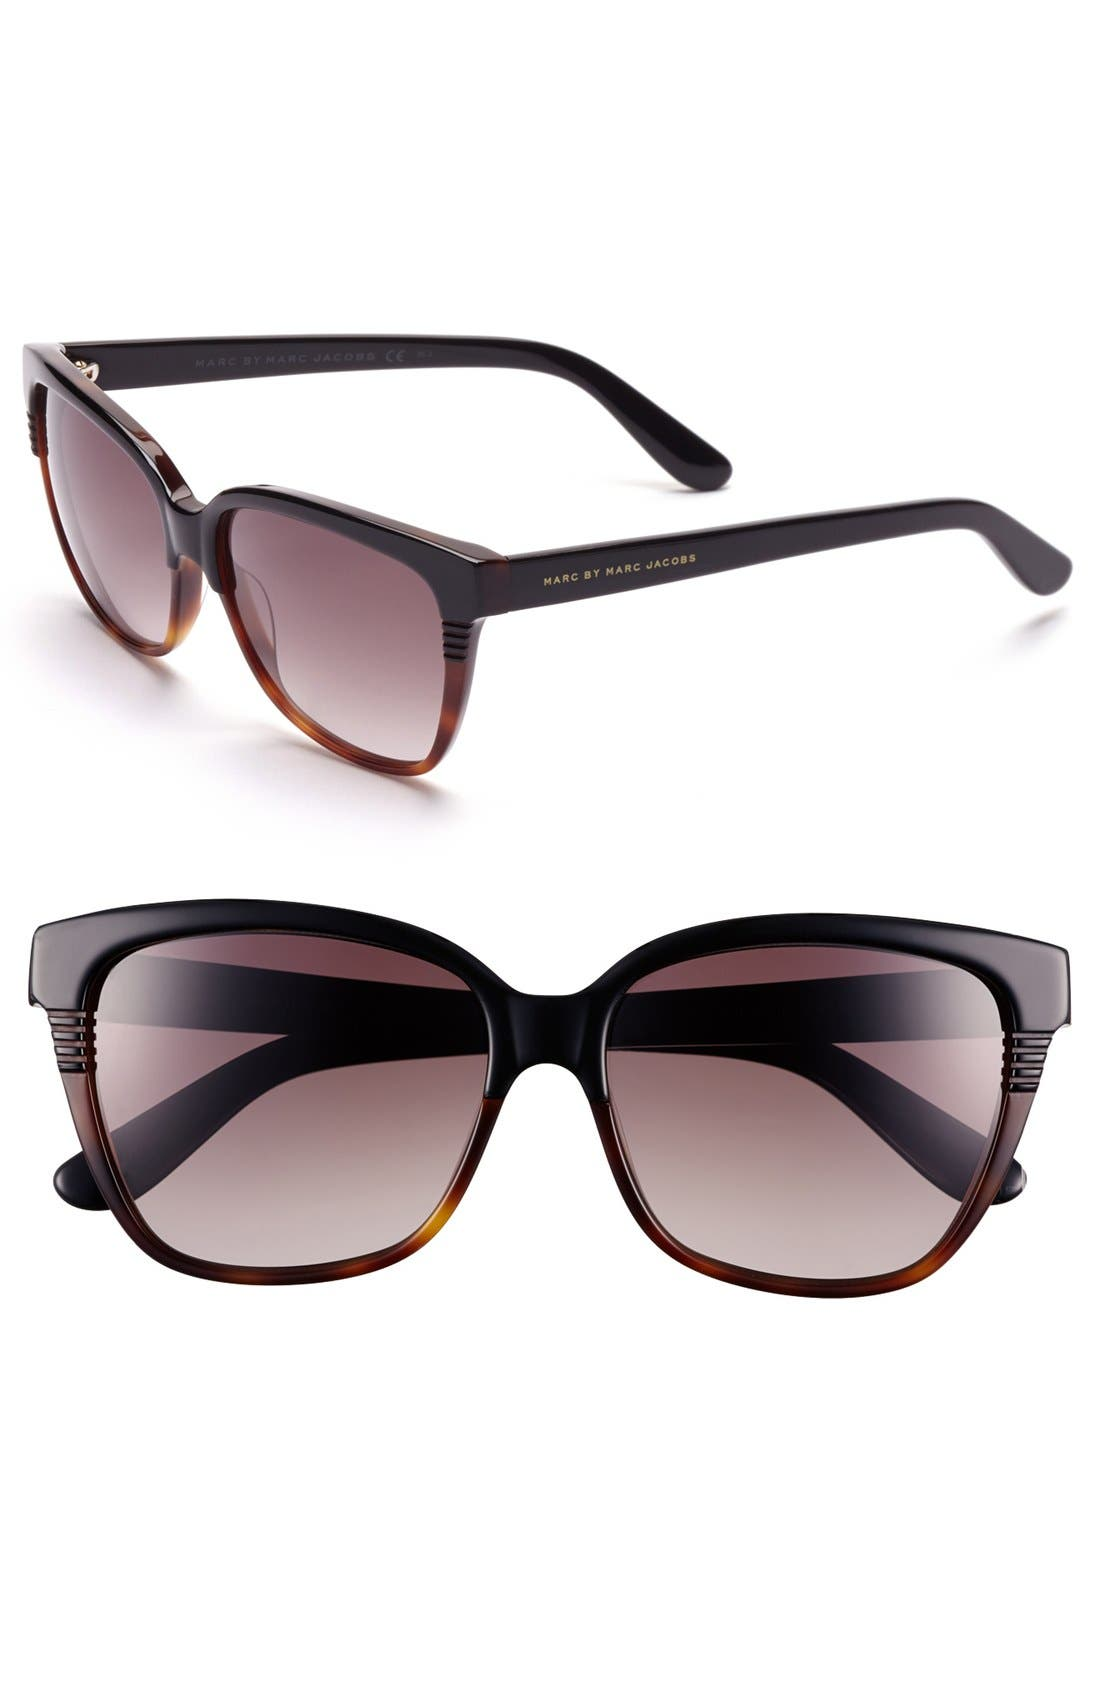 Alternate Image 1 Selected - MARC BY MARC JACOBS 56mm Retro Sunglasses